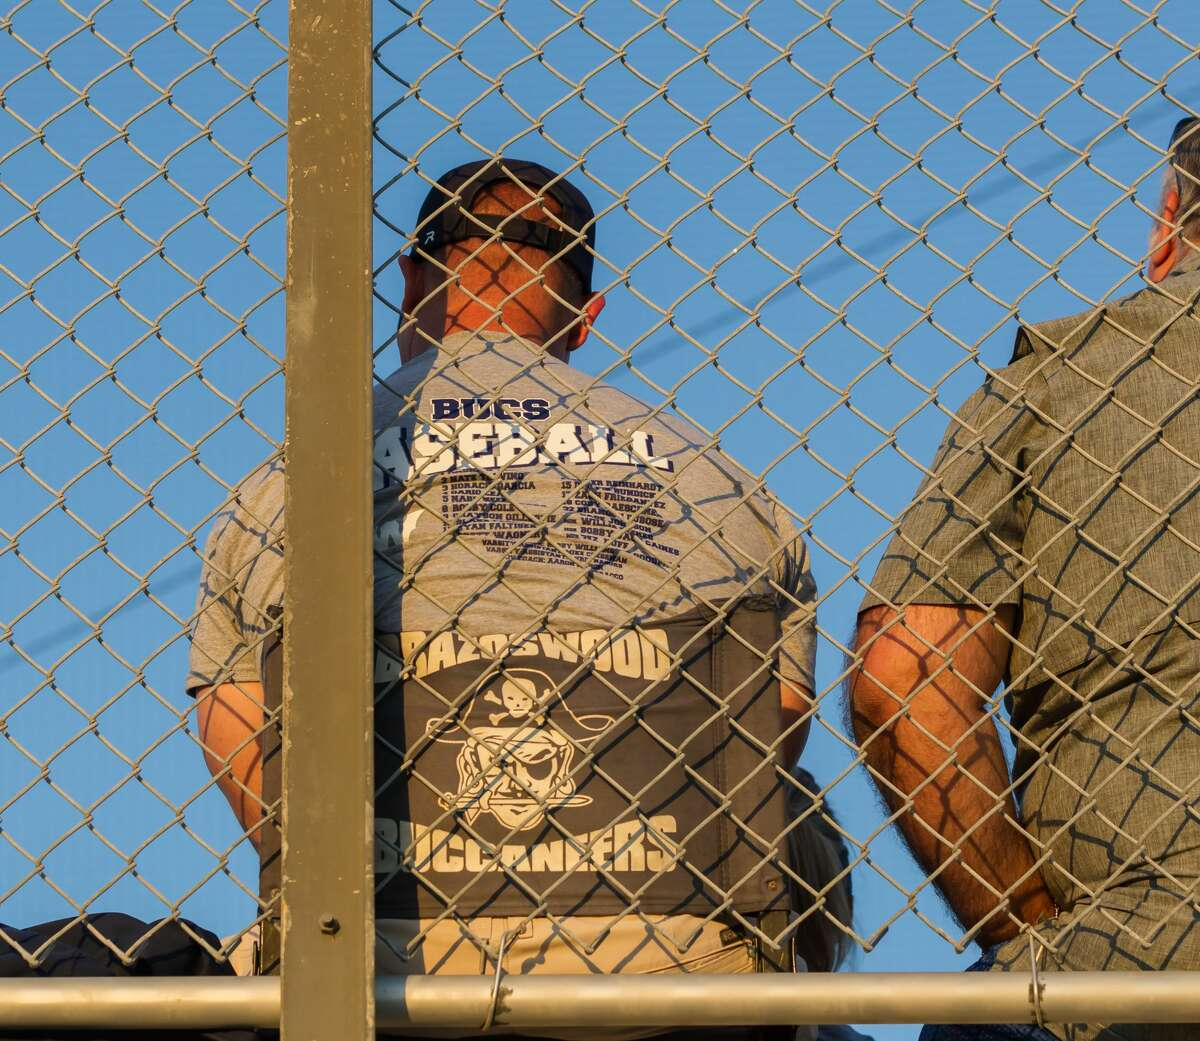 May 5, 2017: Brazoswood Buccaneers fan watches the game from the stands during the Region 3 Bi-district playoff game between the Brazoswood Buccaneers and Dickinson Gators in Dickinson, Texas. (Leslie Plaza Johnson/Freelance)